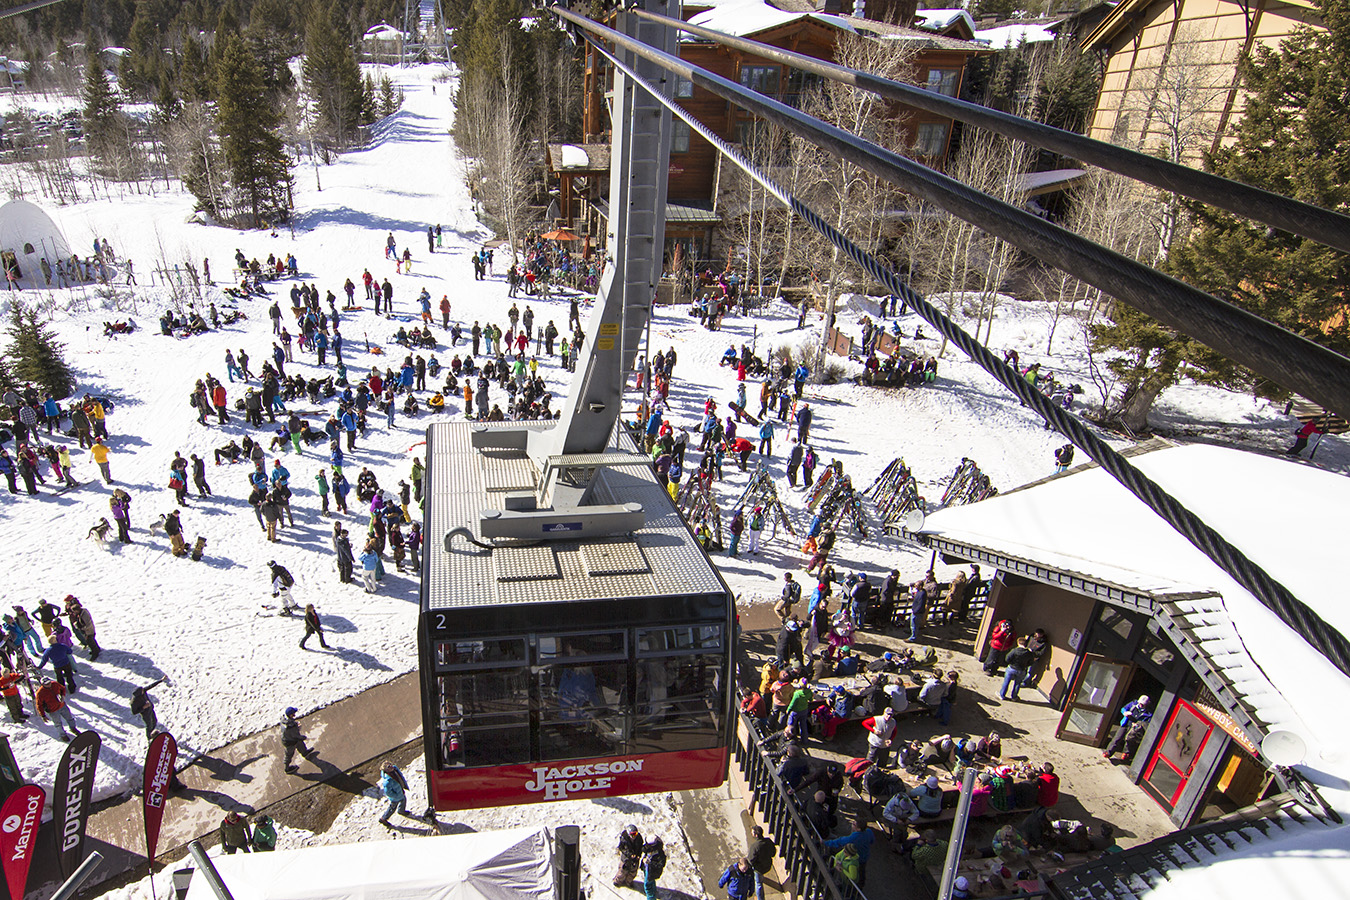 march radness 2016 in jackson hole, wy - jackson hole central